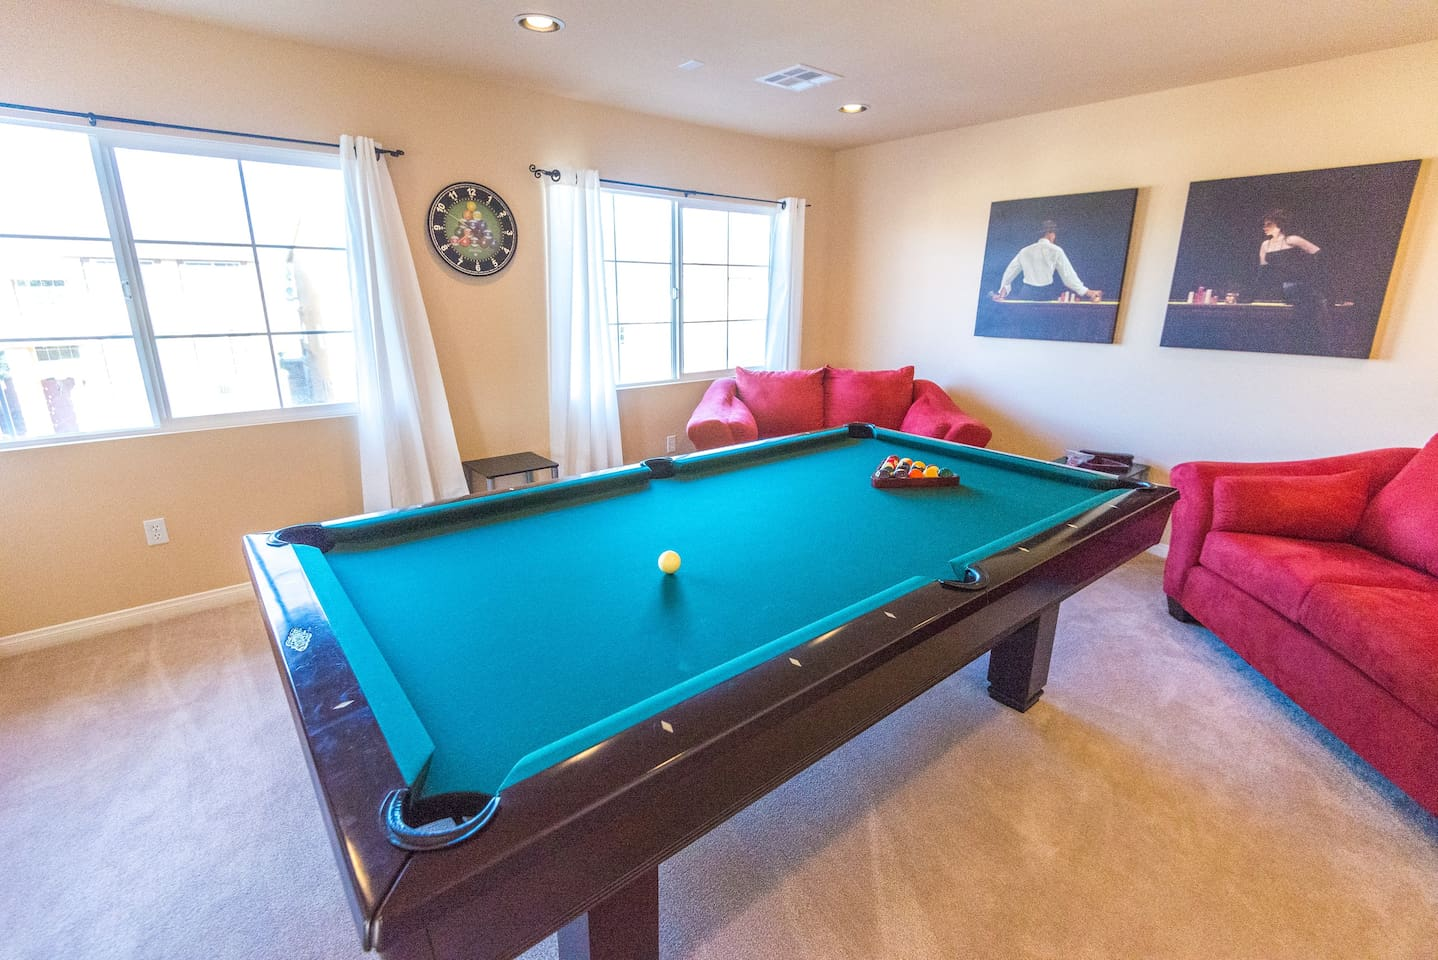 Luxurious Beautiful Story Villa Near Strip Houses For Rent In - Pool table rental las vegas